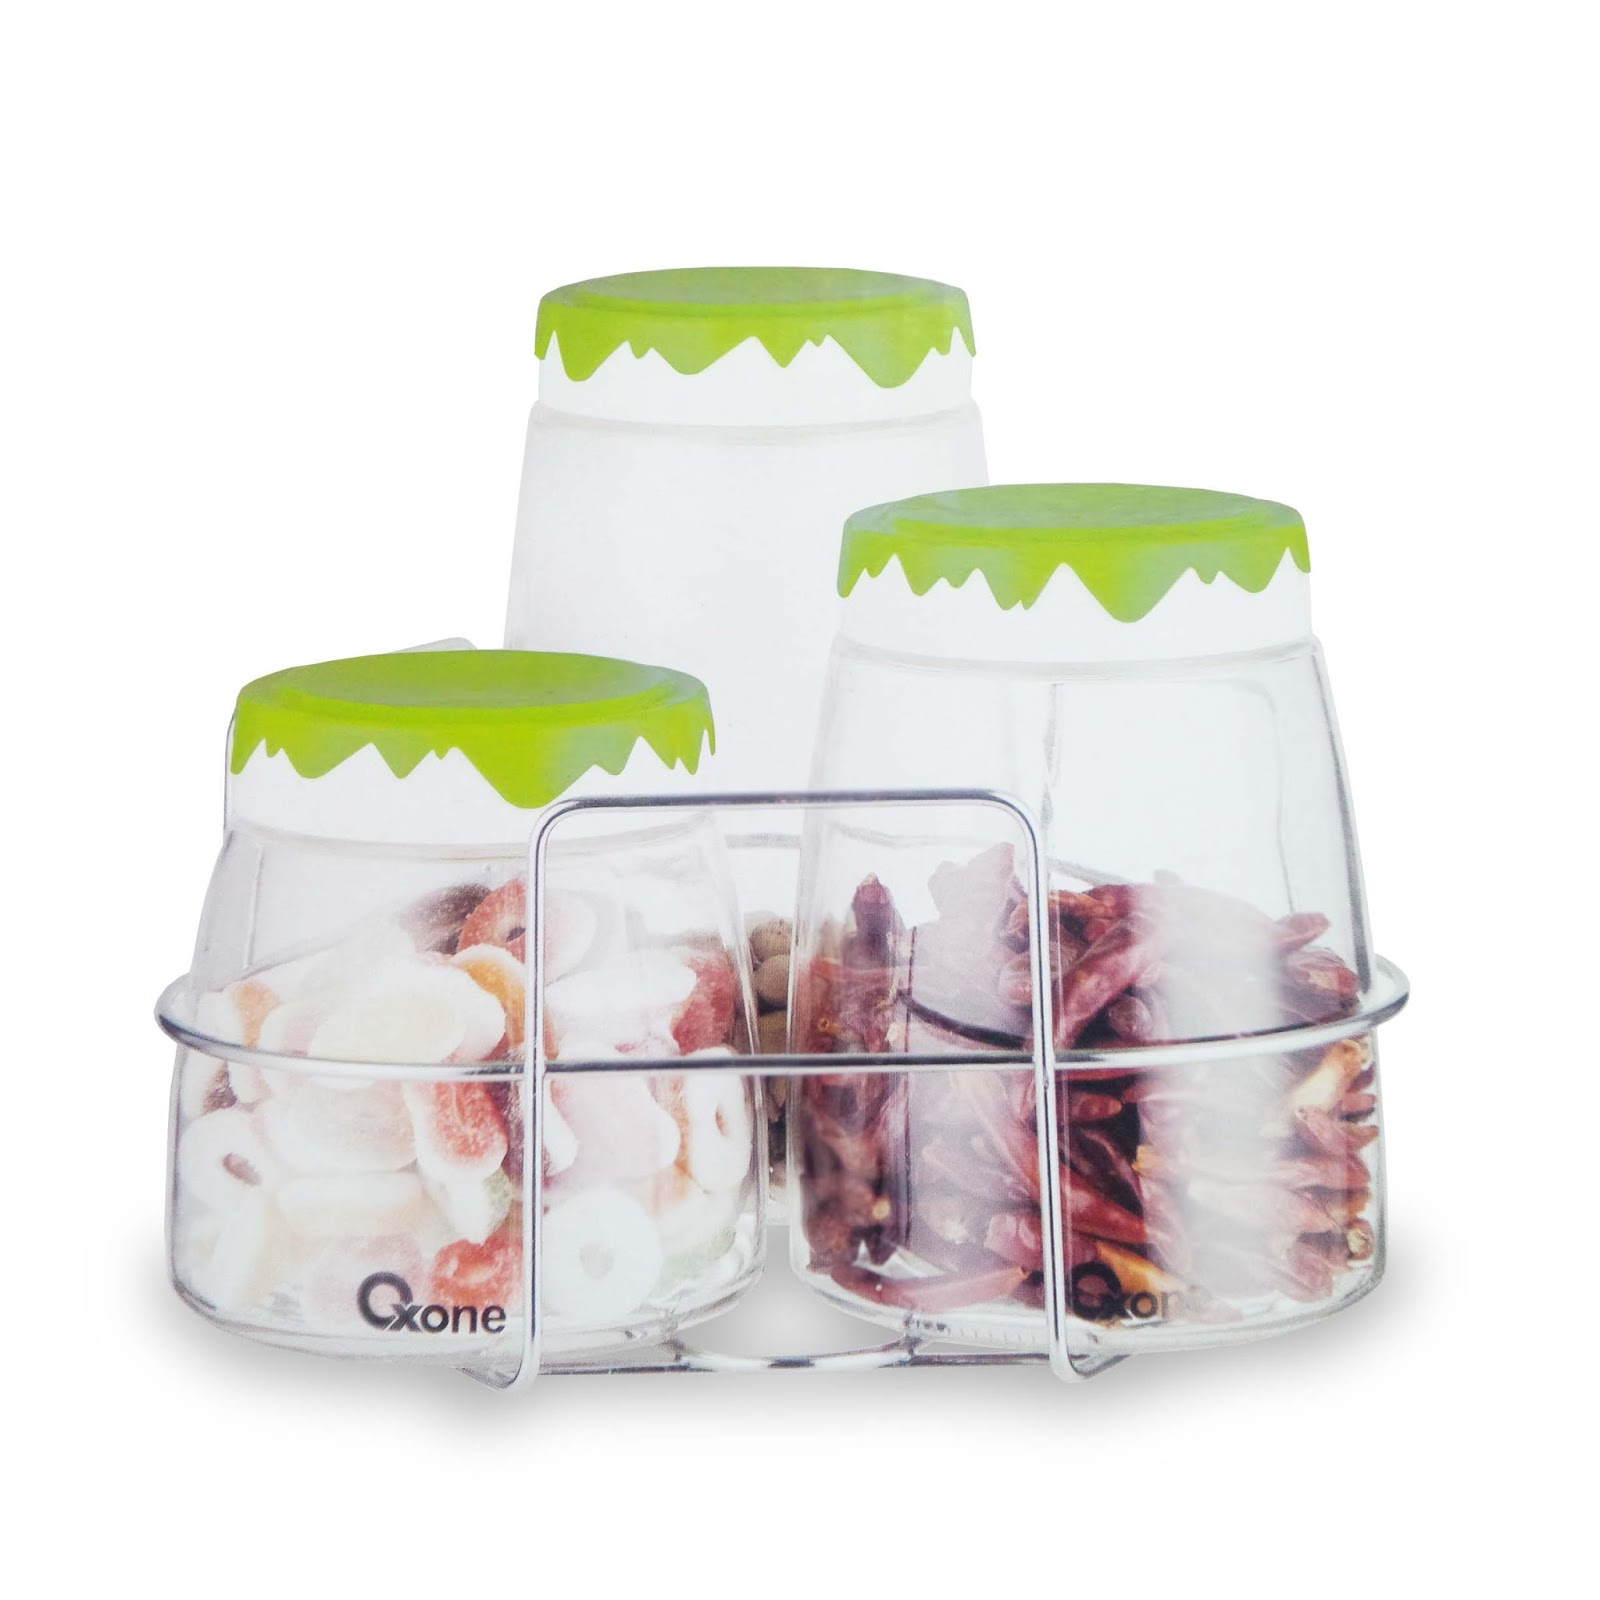 OX-404R Snowy Jars with Rack Oxone